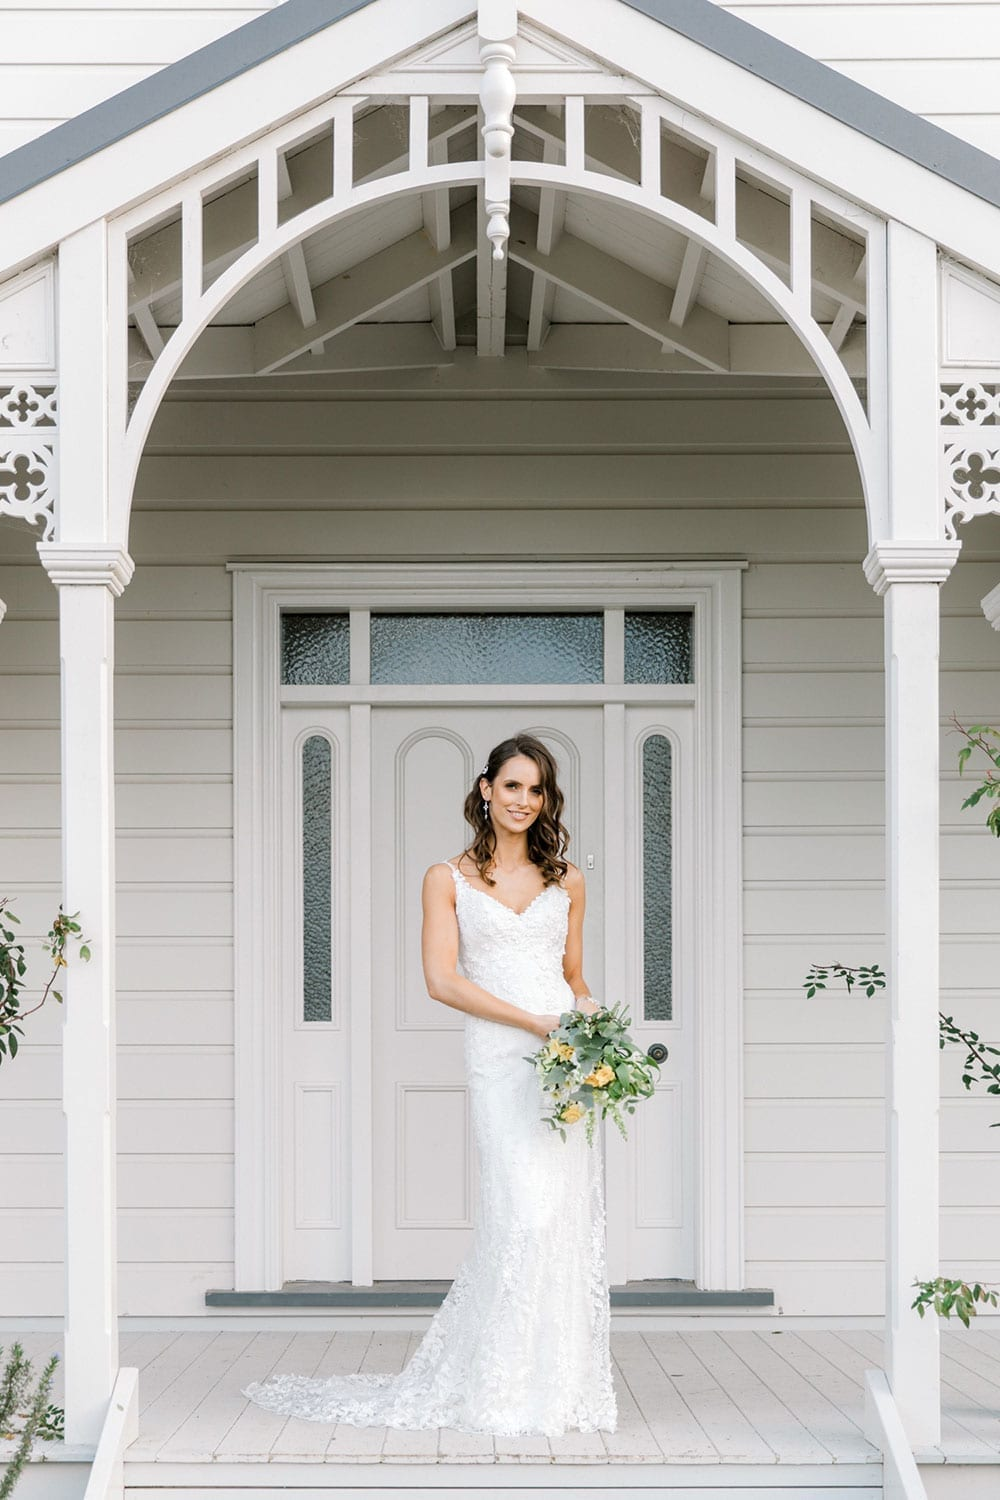 Model wearing Vinka Design Camille Wedding Dress, a Timeless Fitted Wedding Gown on the veranda of a beautiful New Zealand home holding a bouquet